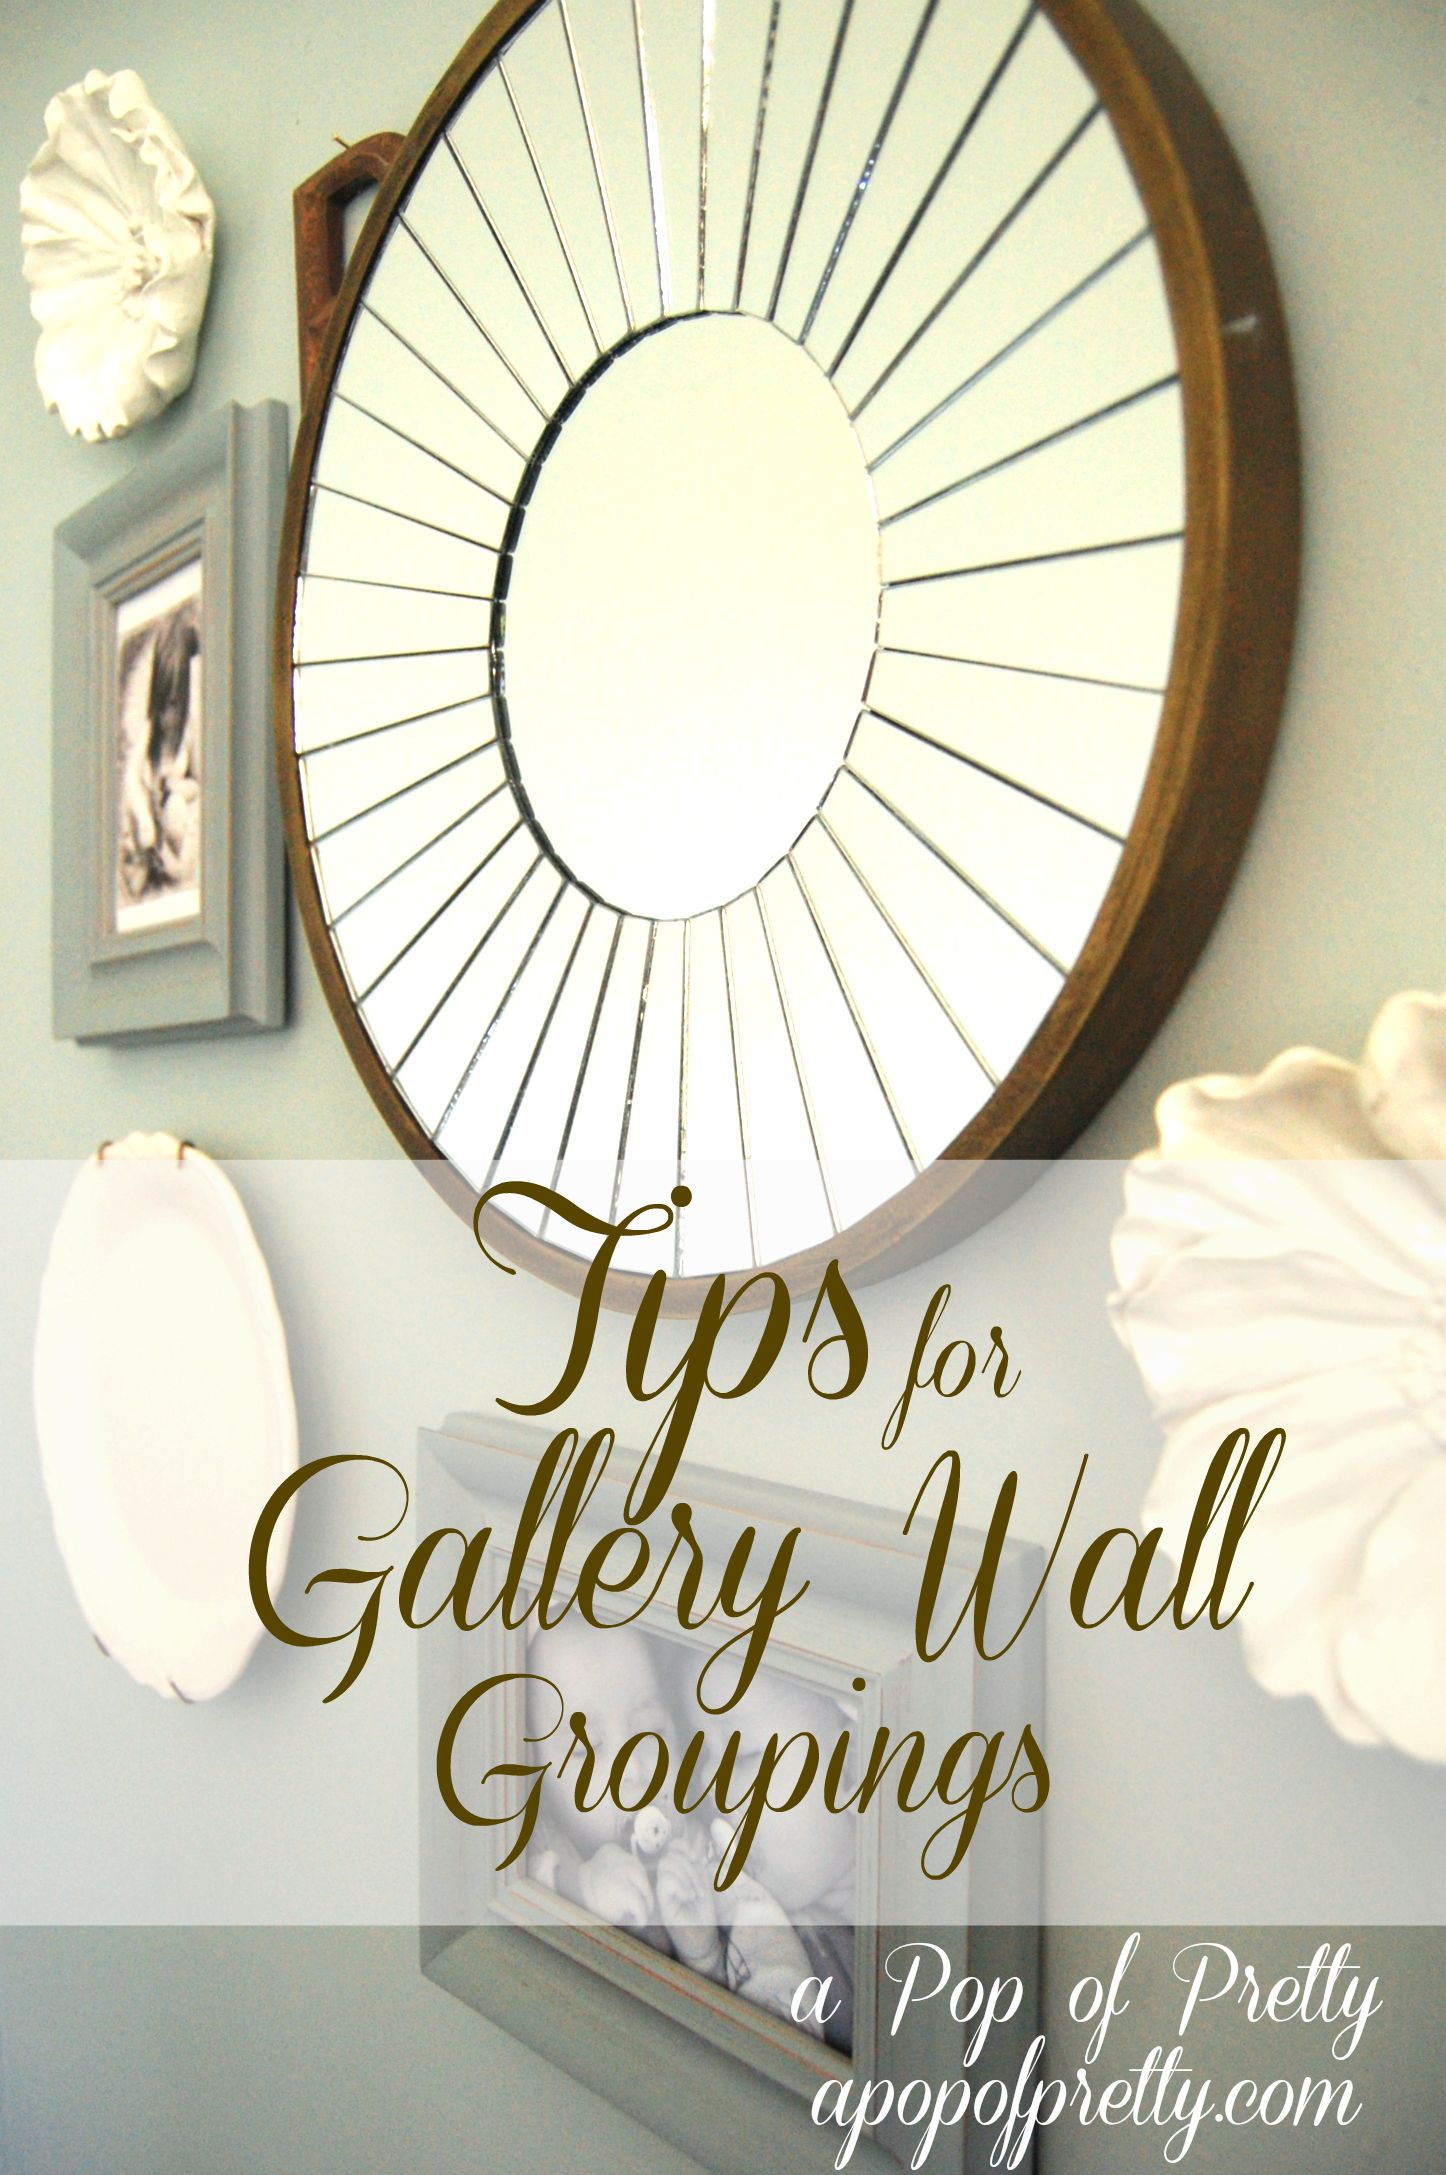 Diy wall art idea group things you love gallery wall tips